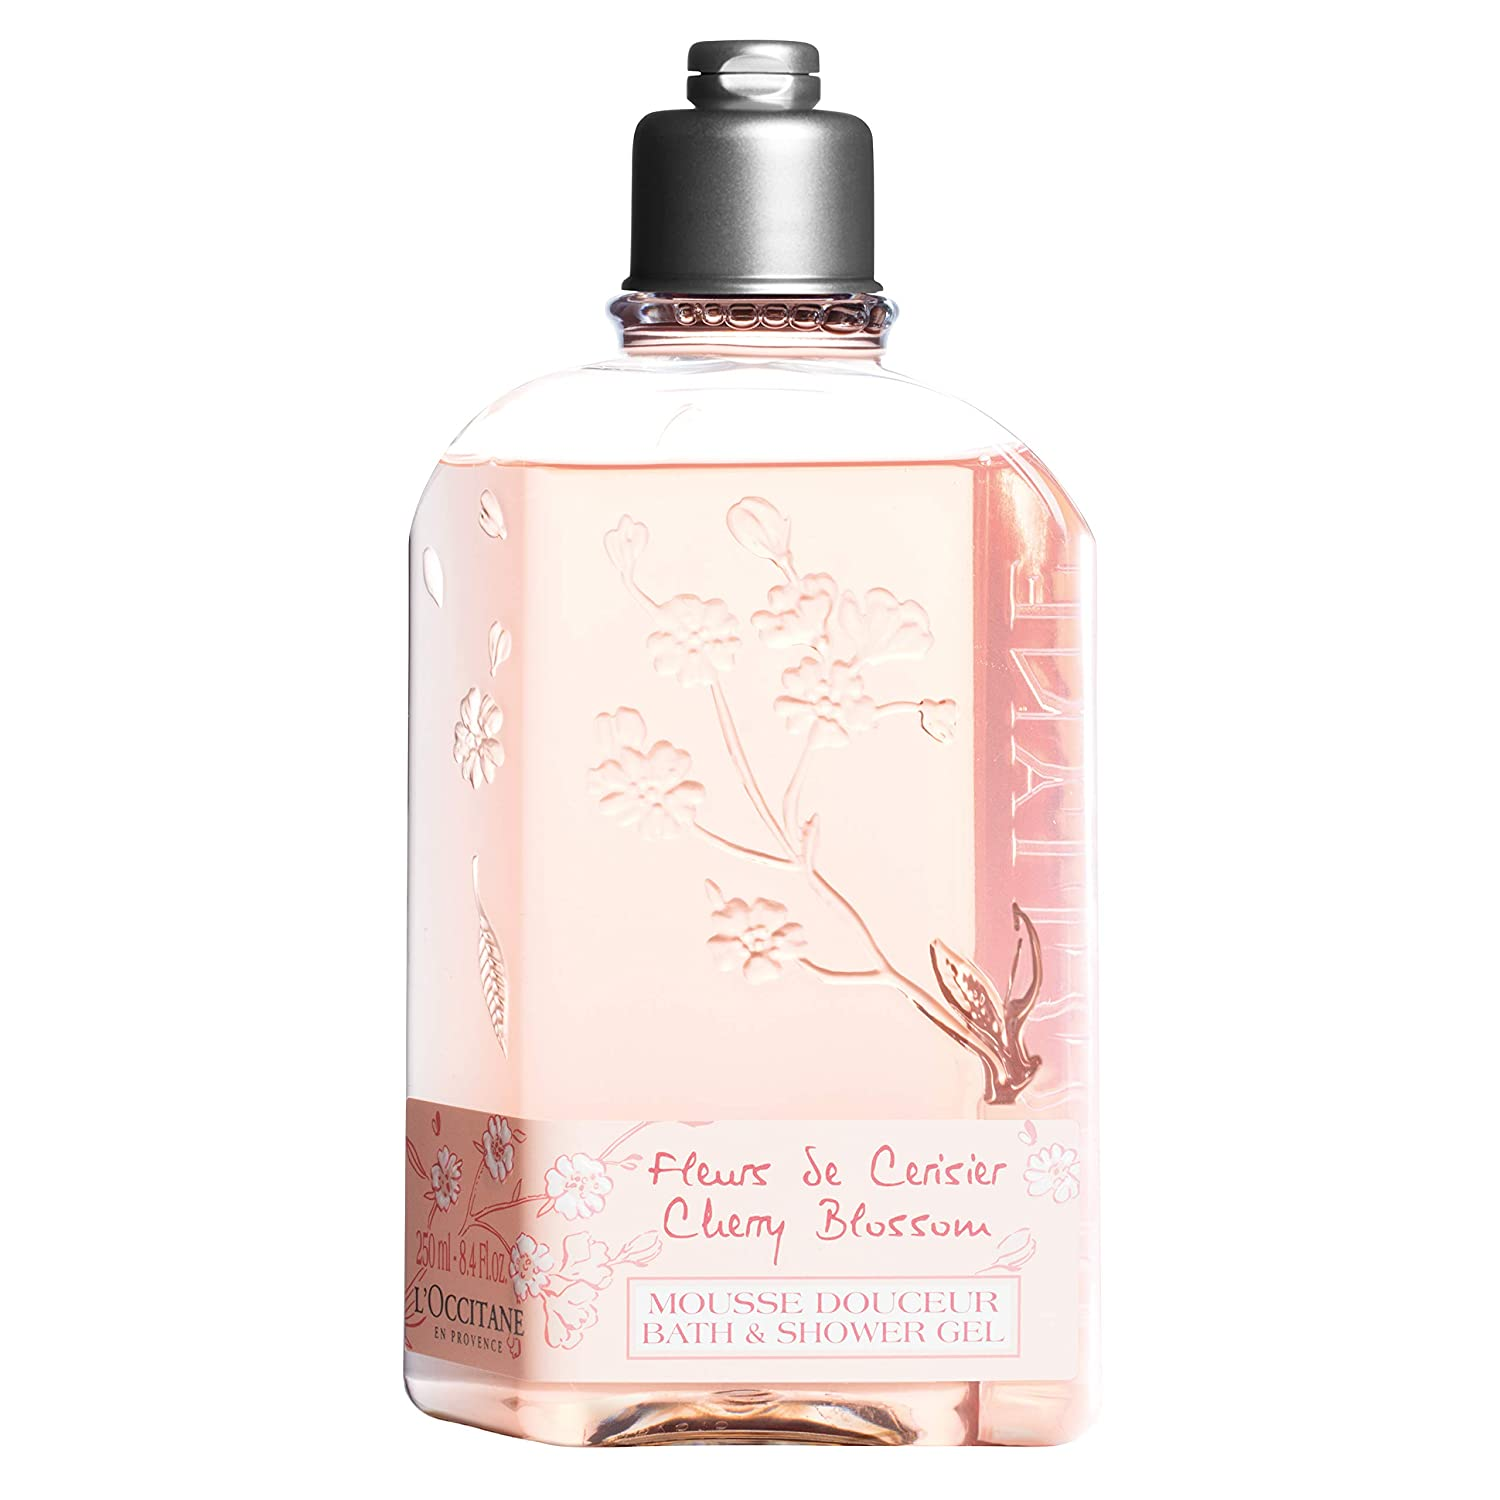 L'Occitane Cherry Blossom Bath and Shower Gel